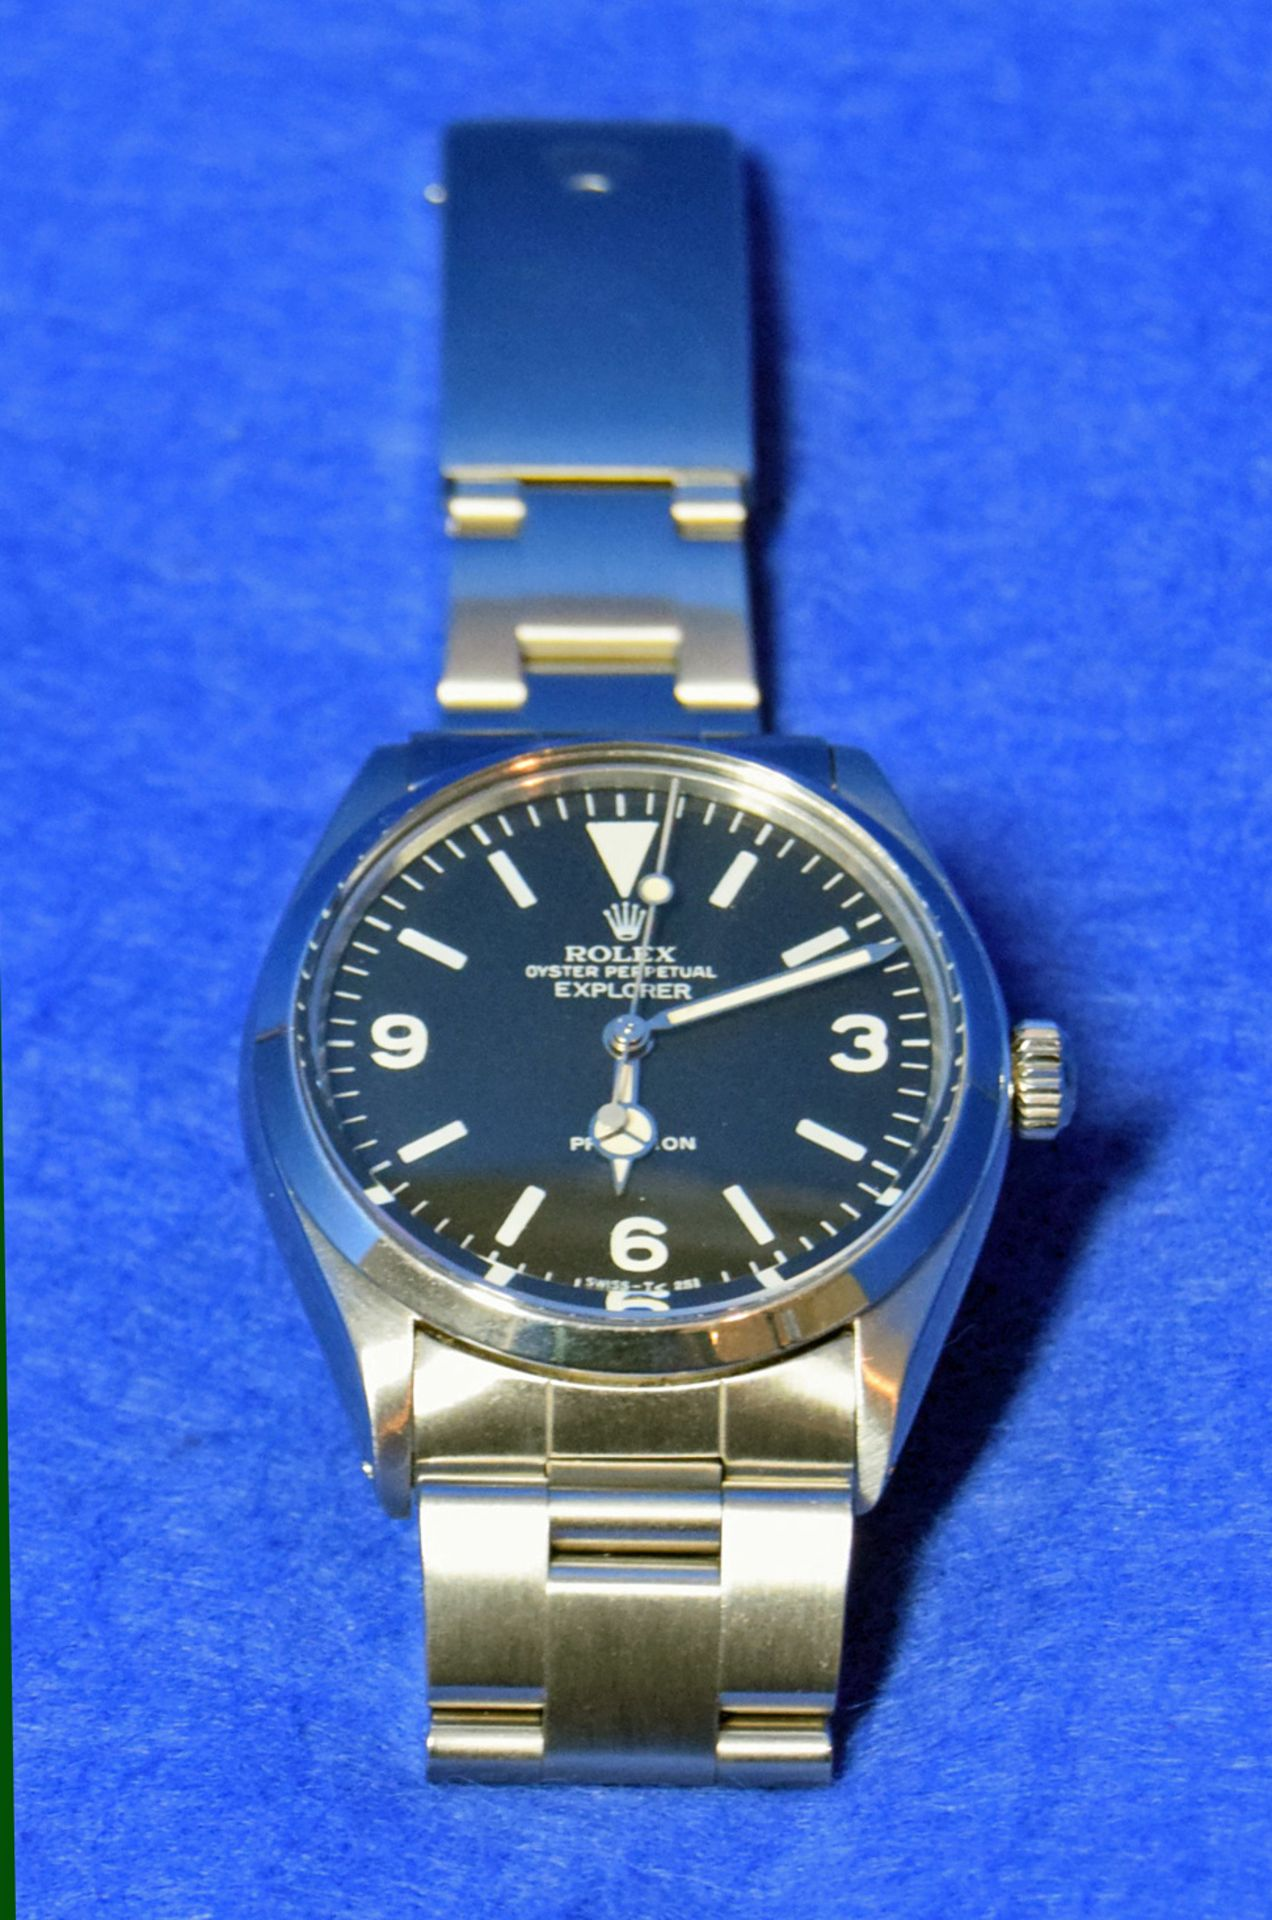 A ROLEX Explorer Watch in a 36mm dia. Oyster Steel Case, a Black Dial Large Hour Markers and - Image 2 of 6